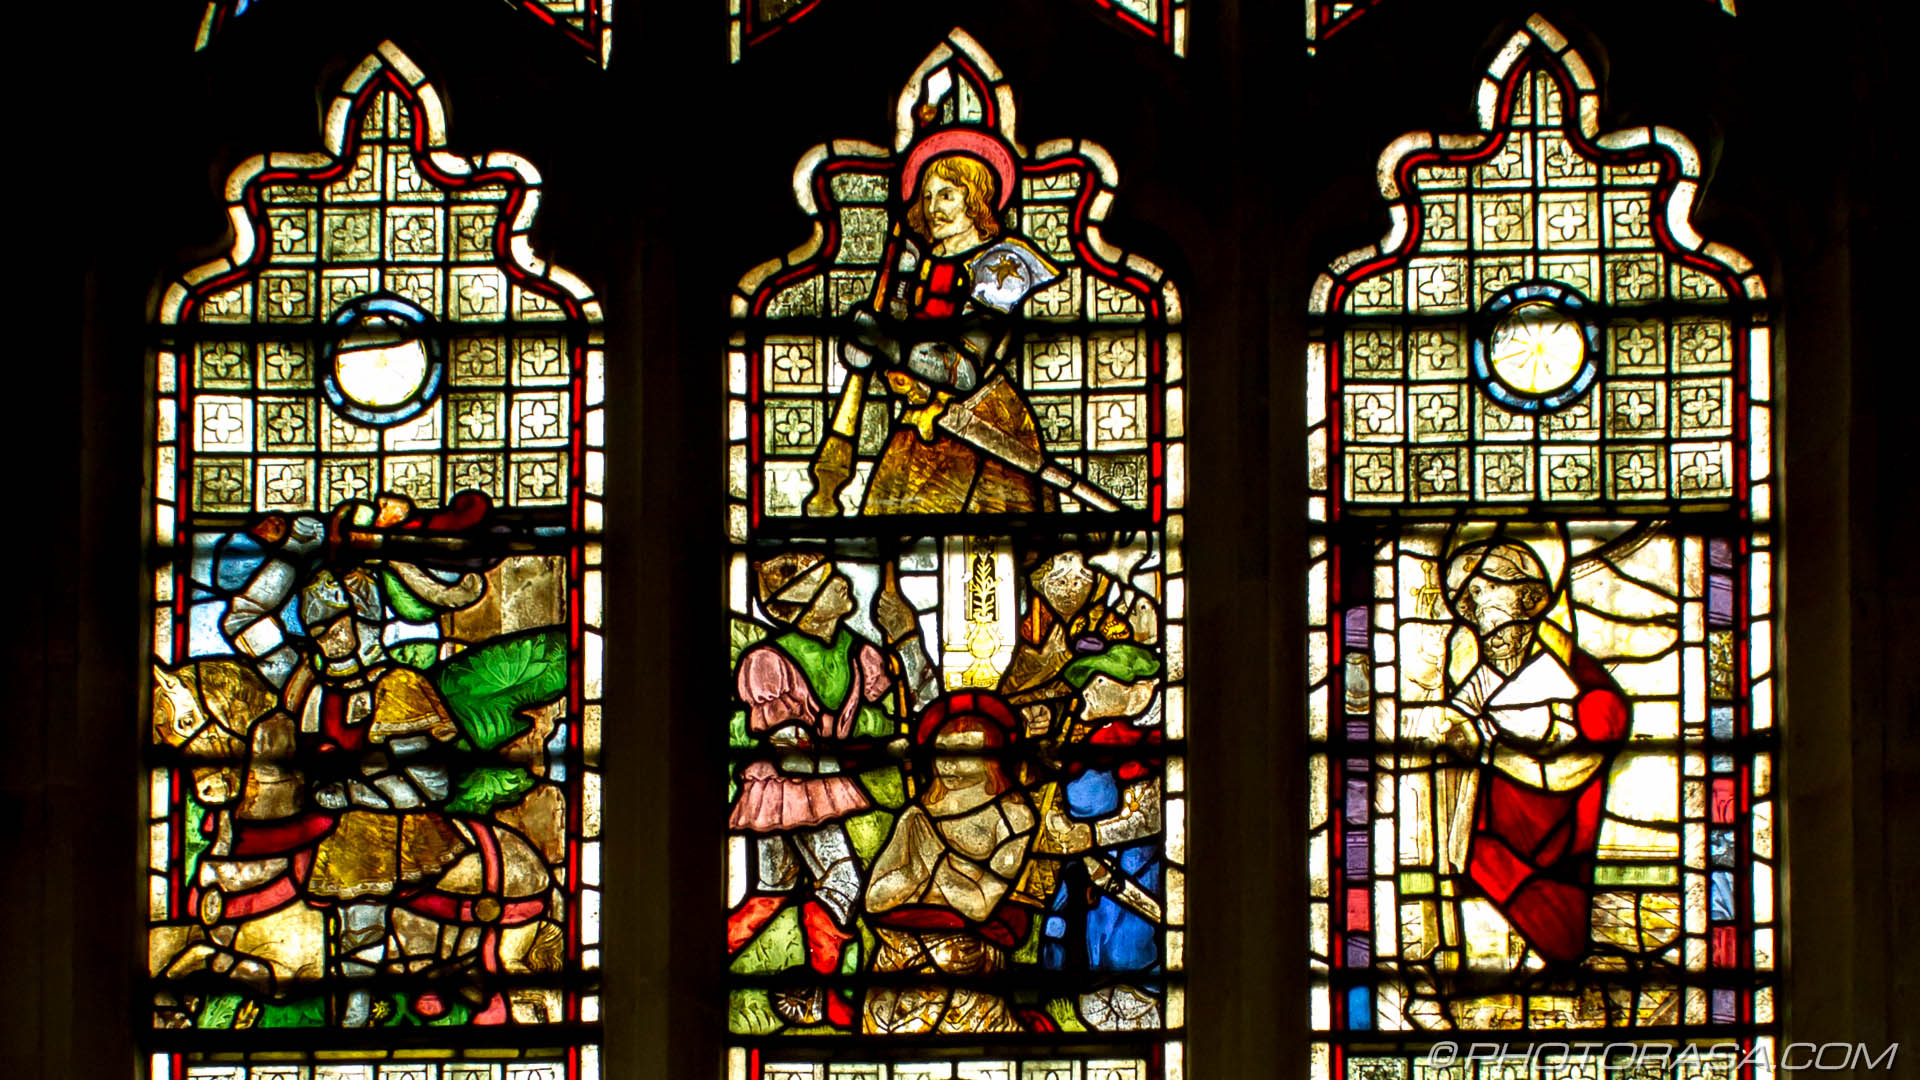 http://photorasa.com/st-dunstans-church-cranbrook/damaged-stained-glass/